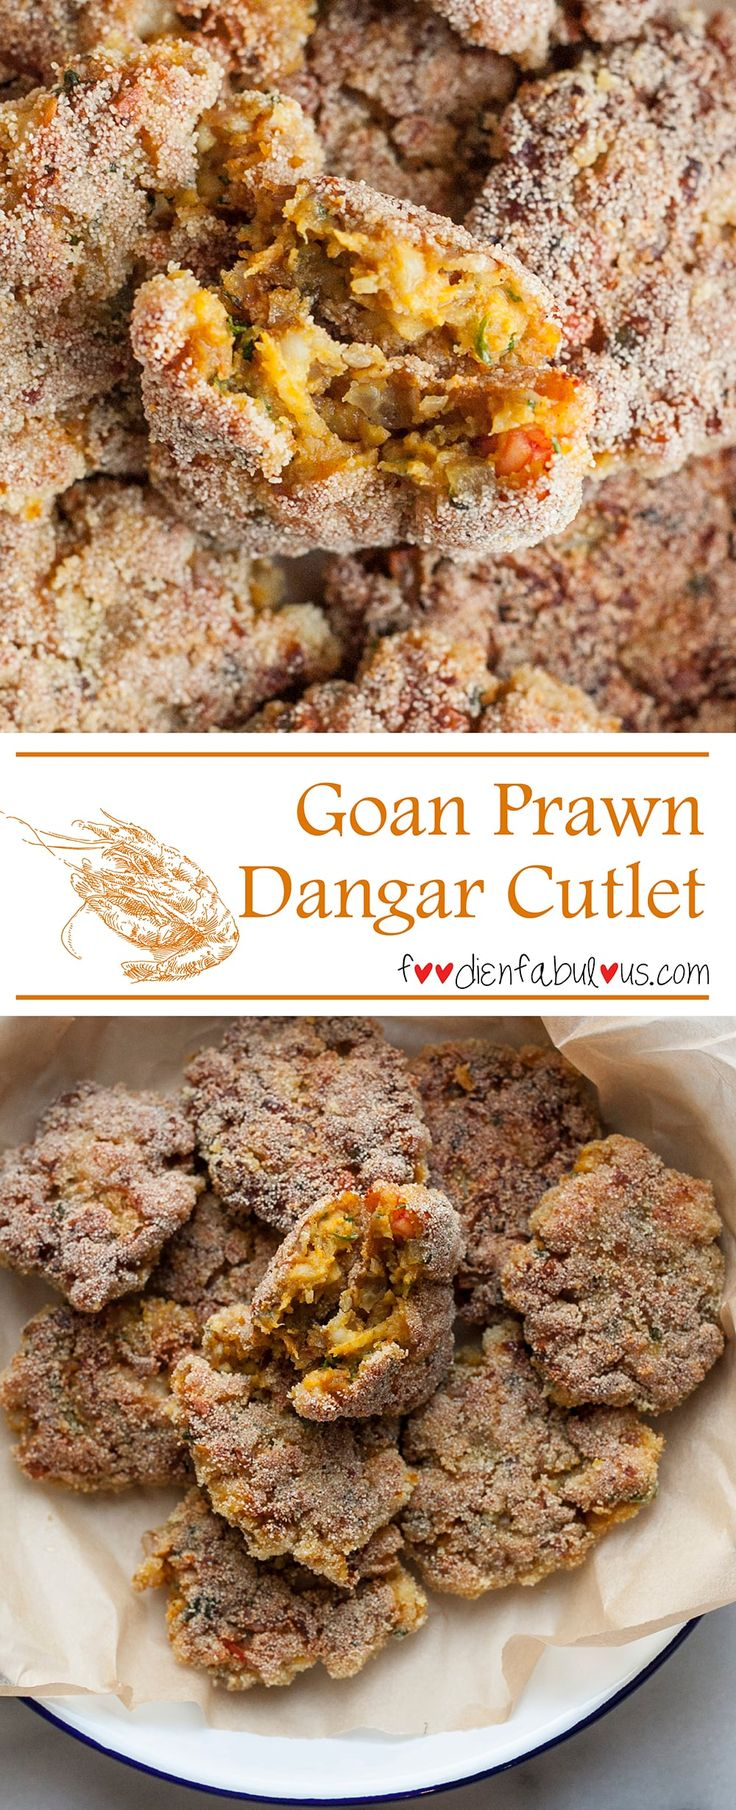 Easy recipe for Goan-style prawn cutlets - prawns mixed with spices and pan-fried with a semolina coating. So versatile, its great as a an appetiser, snack or even as a sandwich patty.